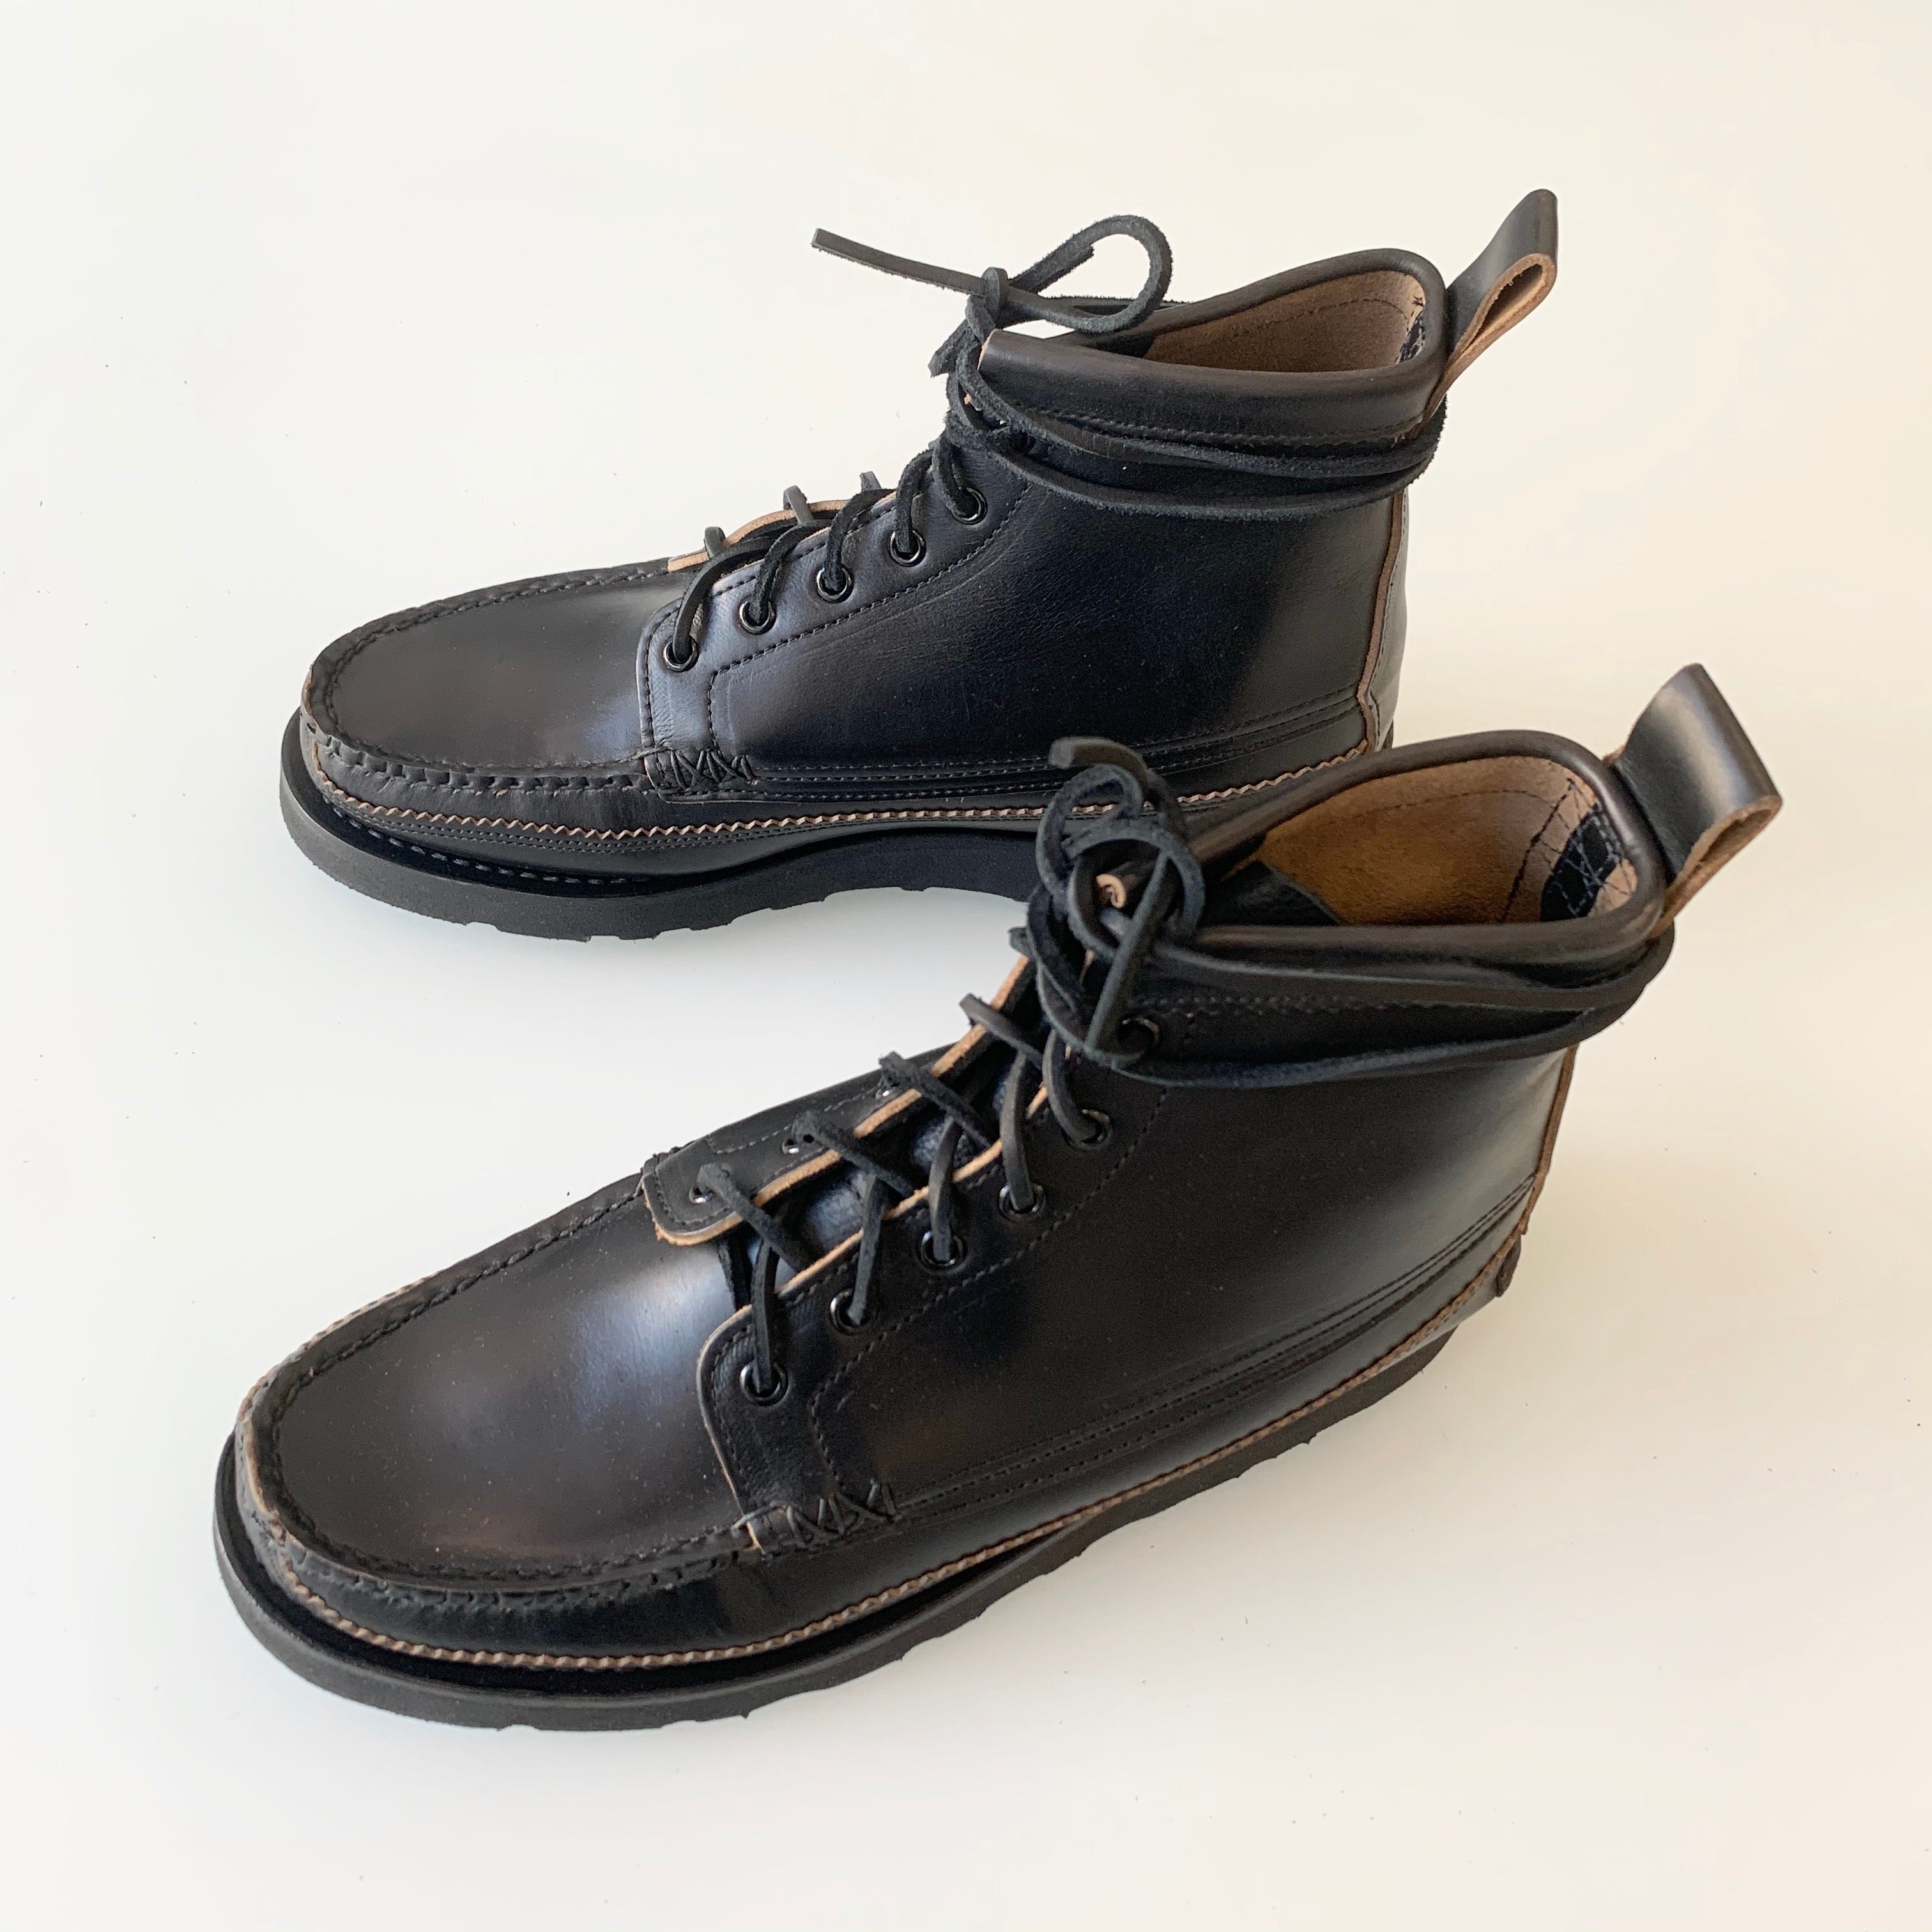 Maine Guide 6 Eye DB Boots in G Black